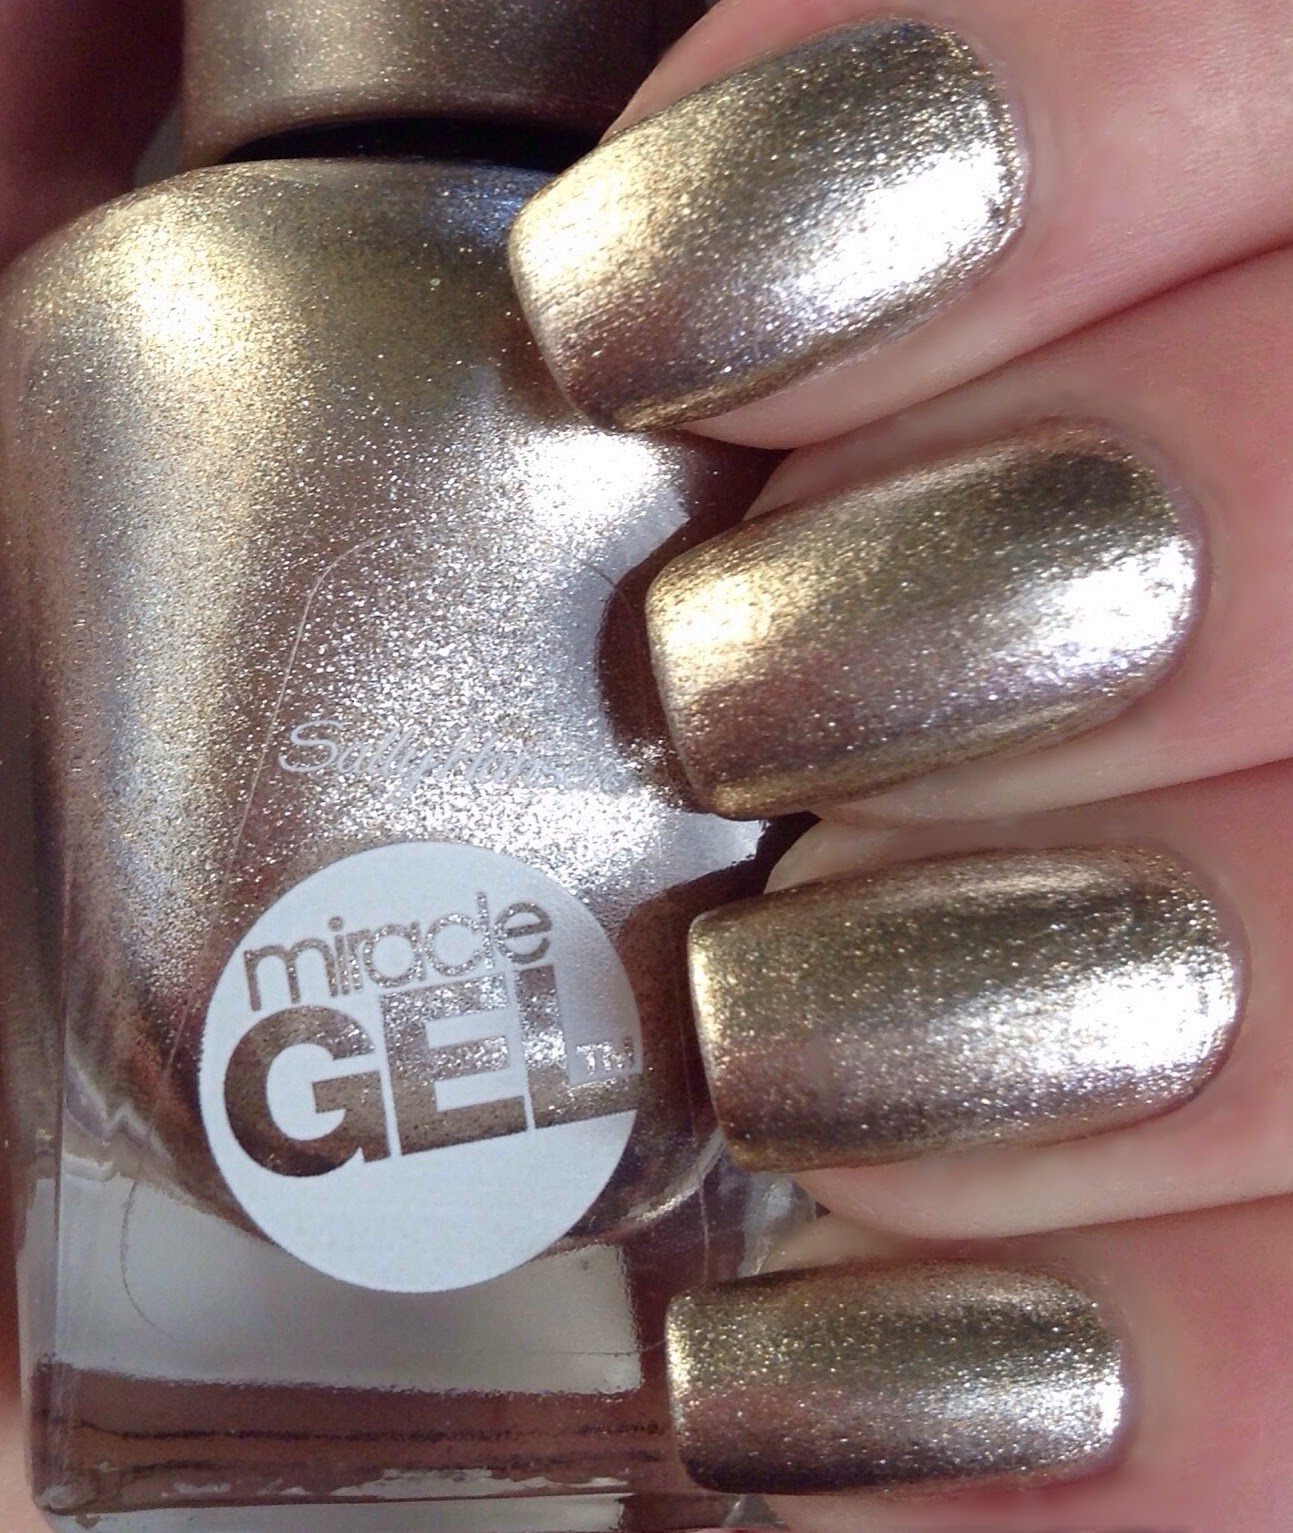 "don's nail obsession!: sally hansen miracle gel ""game of chromes"